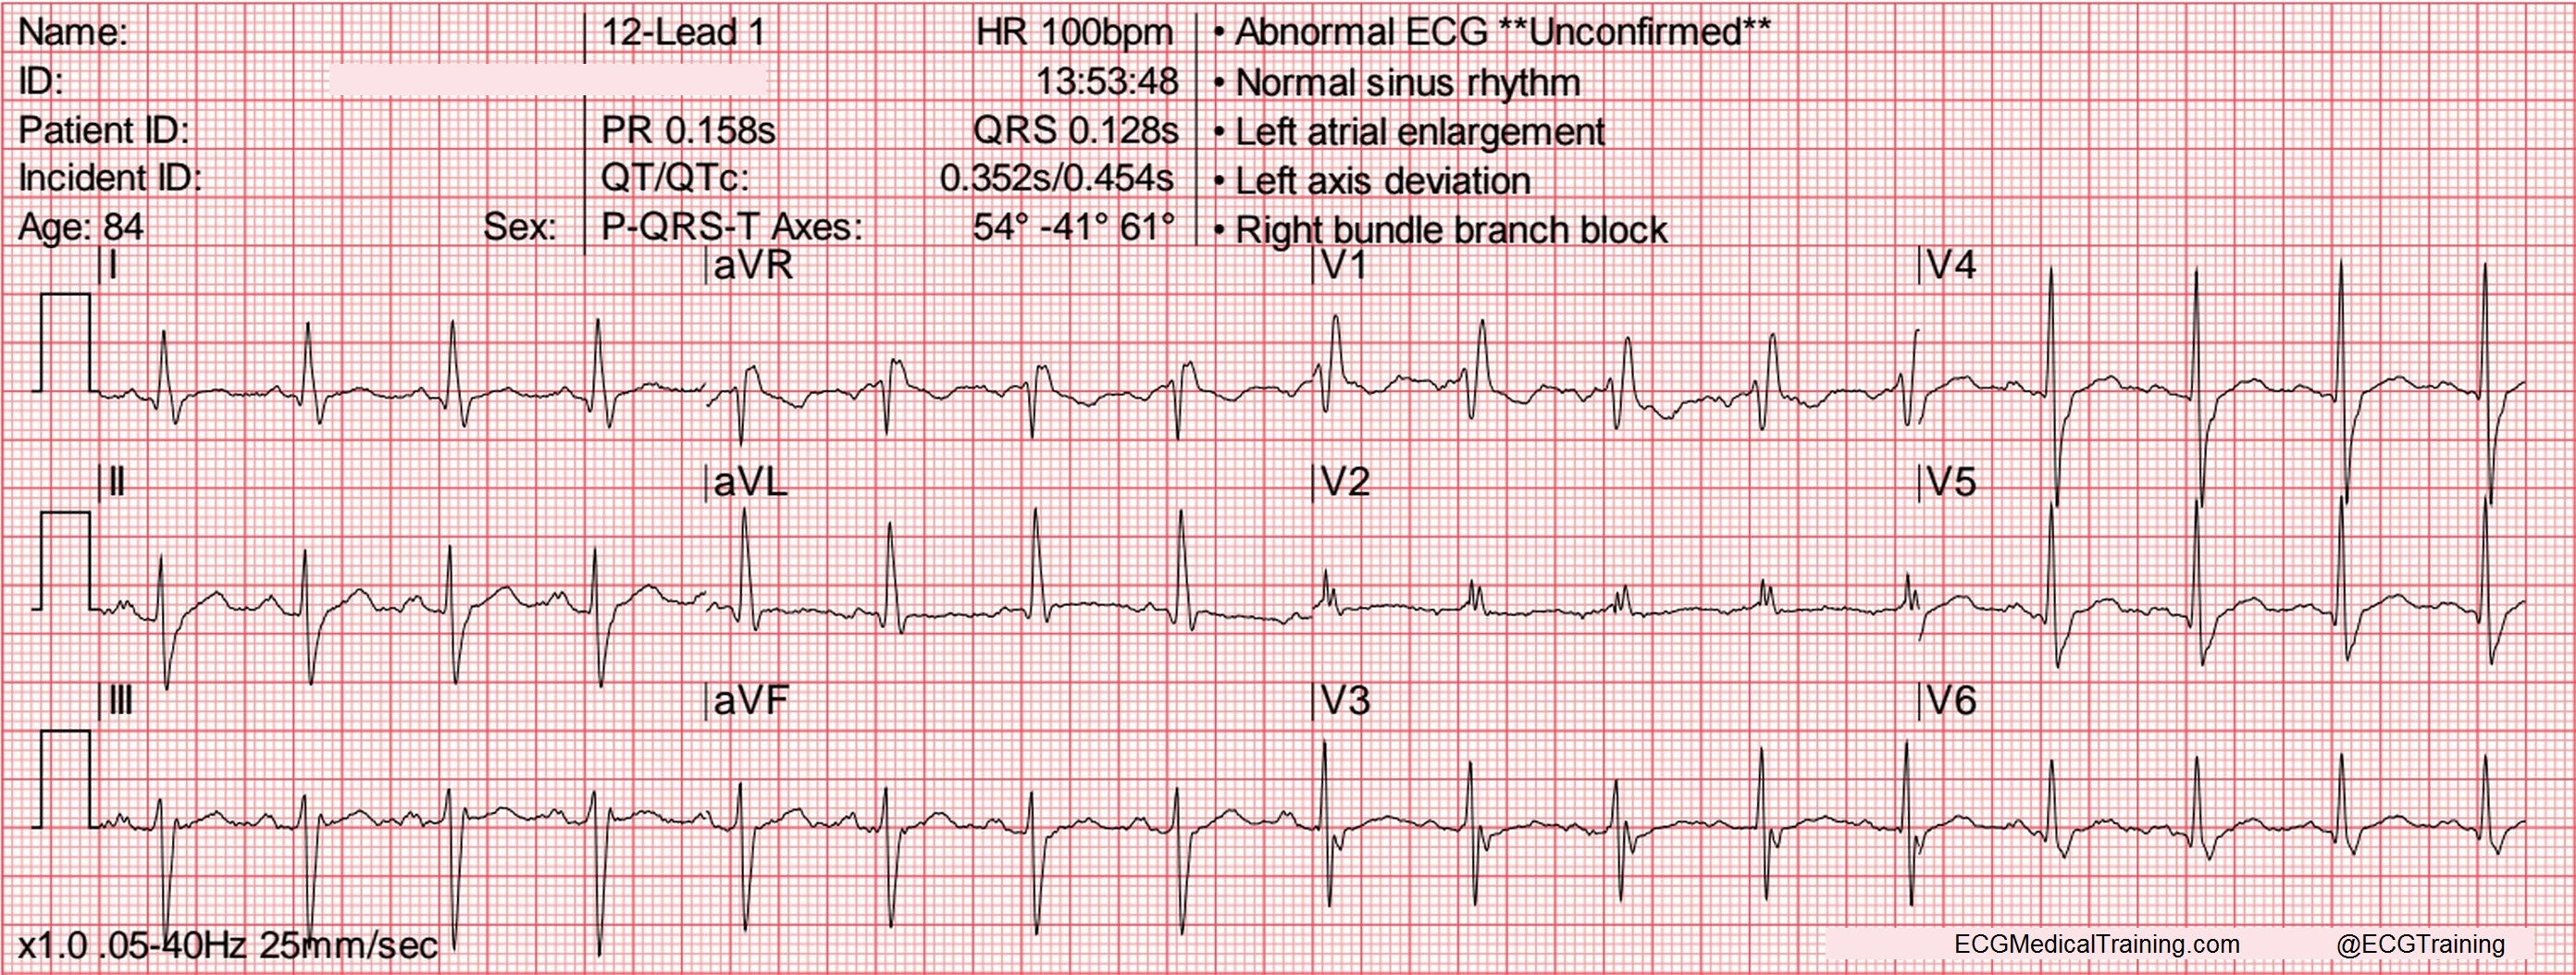 Heart rate on ekg strip impossible